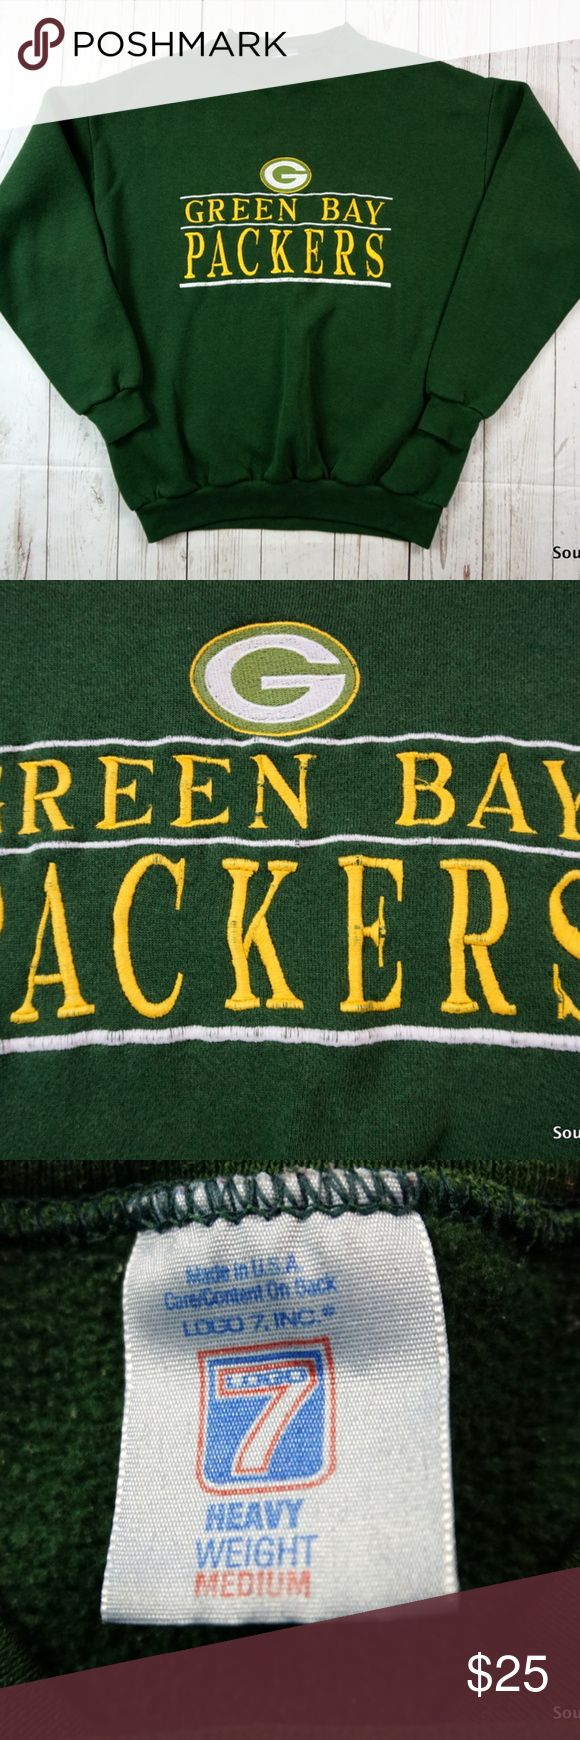 """Vintage 90s Green Bay Packers Sweatshirt, Medium Vintage 90s Green Bay Packers Sweatshirt, Men's Medium, 90s Fashion, NFL Football, Packers Sweatshirt, Logo 7  Brand: ......... Logo 7 Color: .......... Green & Yellow Size: ............ Men's Medium Material:  ..... 50% Polyester, 50% Cotton  Detailed Measurements: (Front Side of Garment has been measured laying flat on a table)  Sleeves:..............  20"""" inches  Chest:.................  21.5"""" inches Length:…..........    26"""" inches  Ships…"""